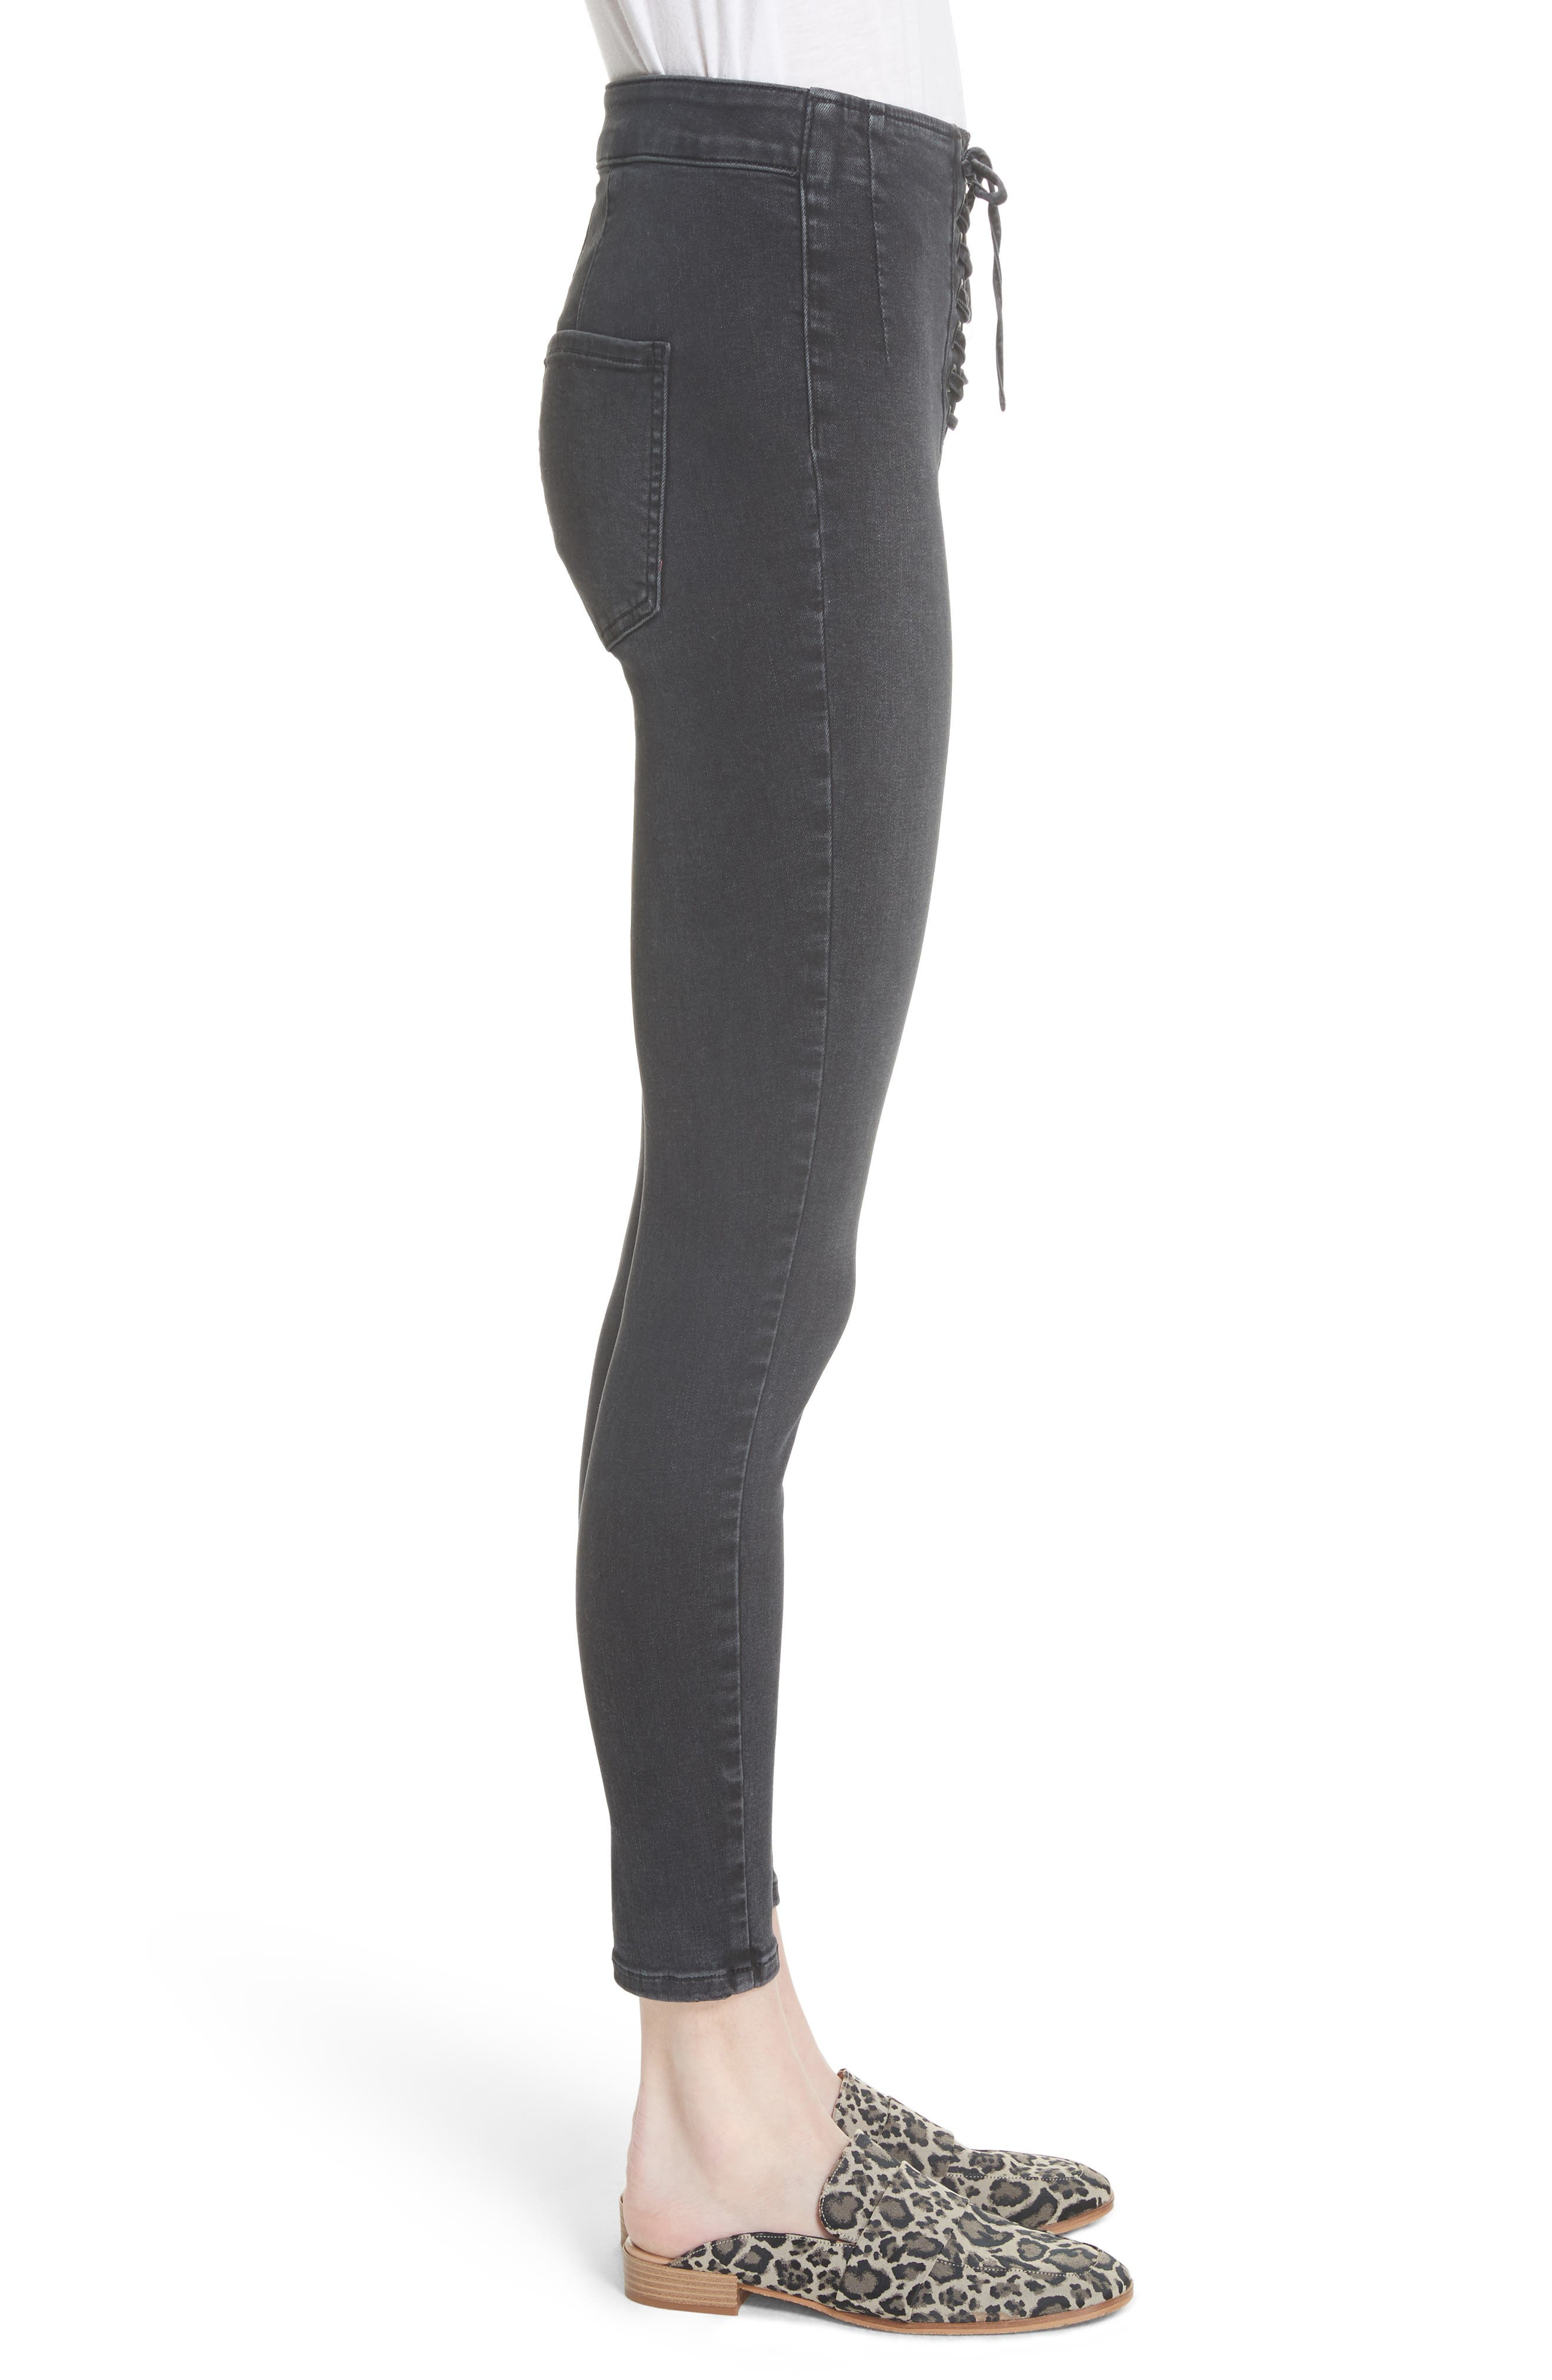 Lace-Up High Waist Denim Leggings,                             Alternate thumbnail 3, color,                             Black